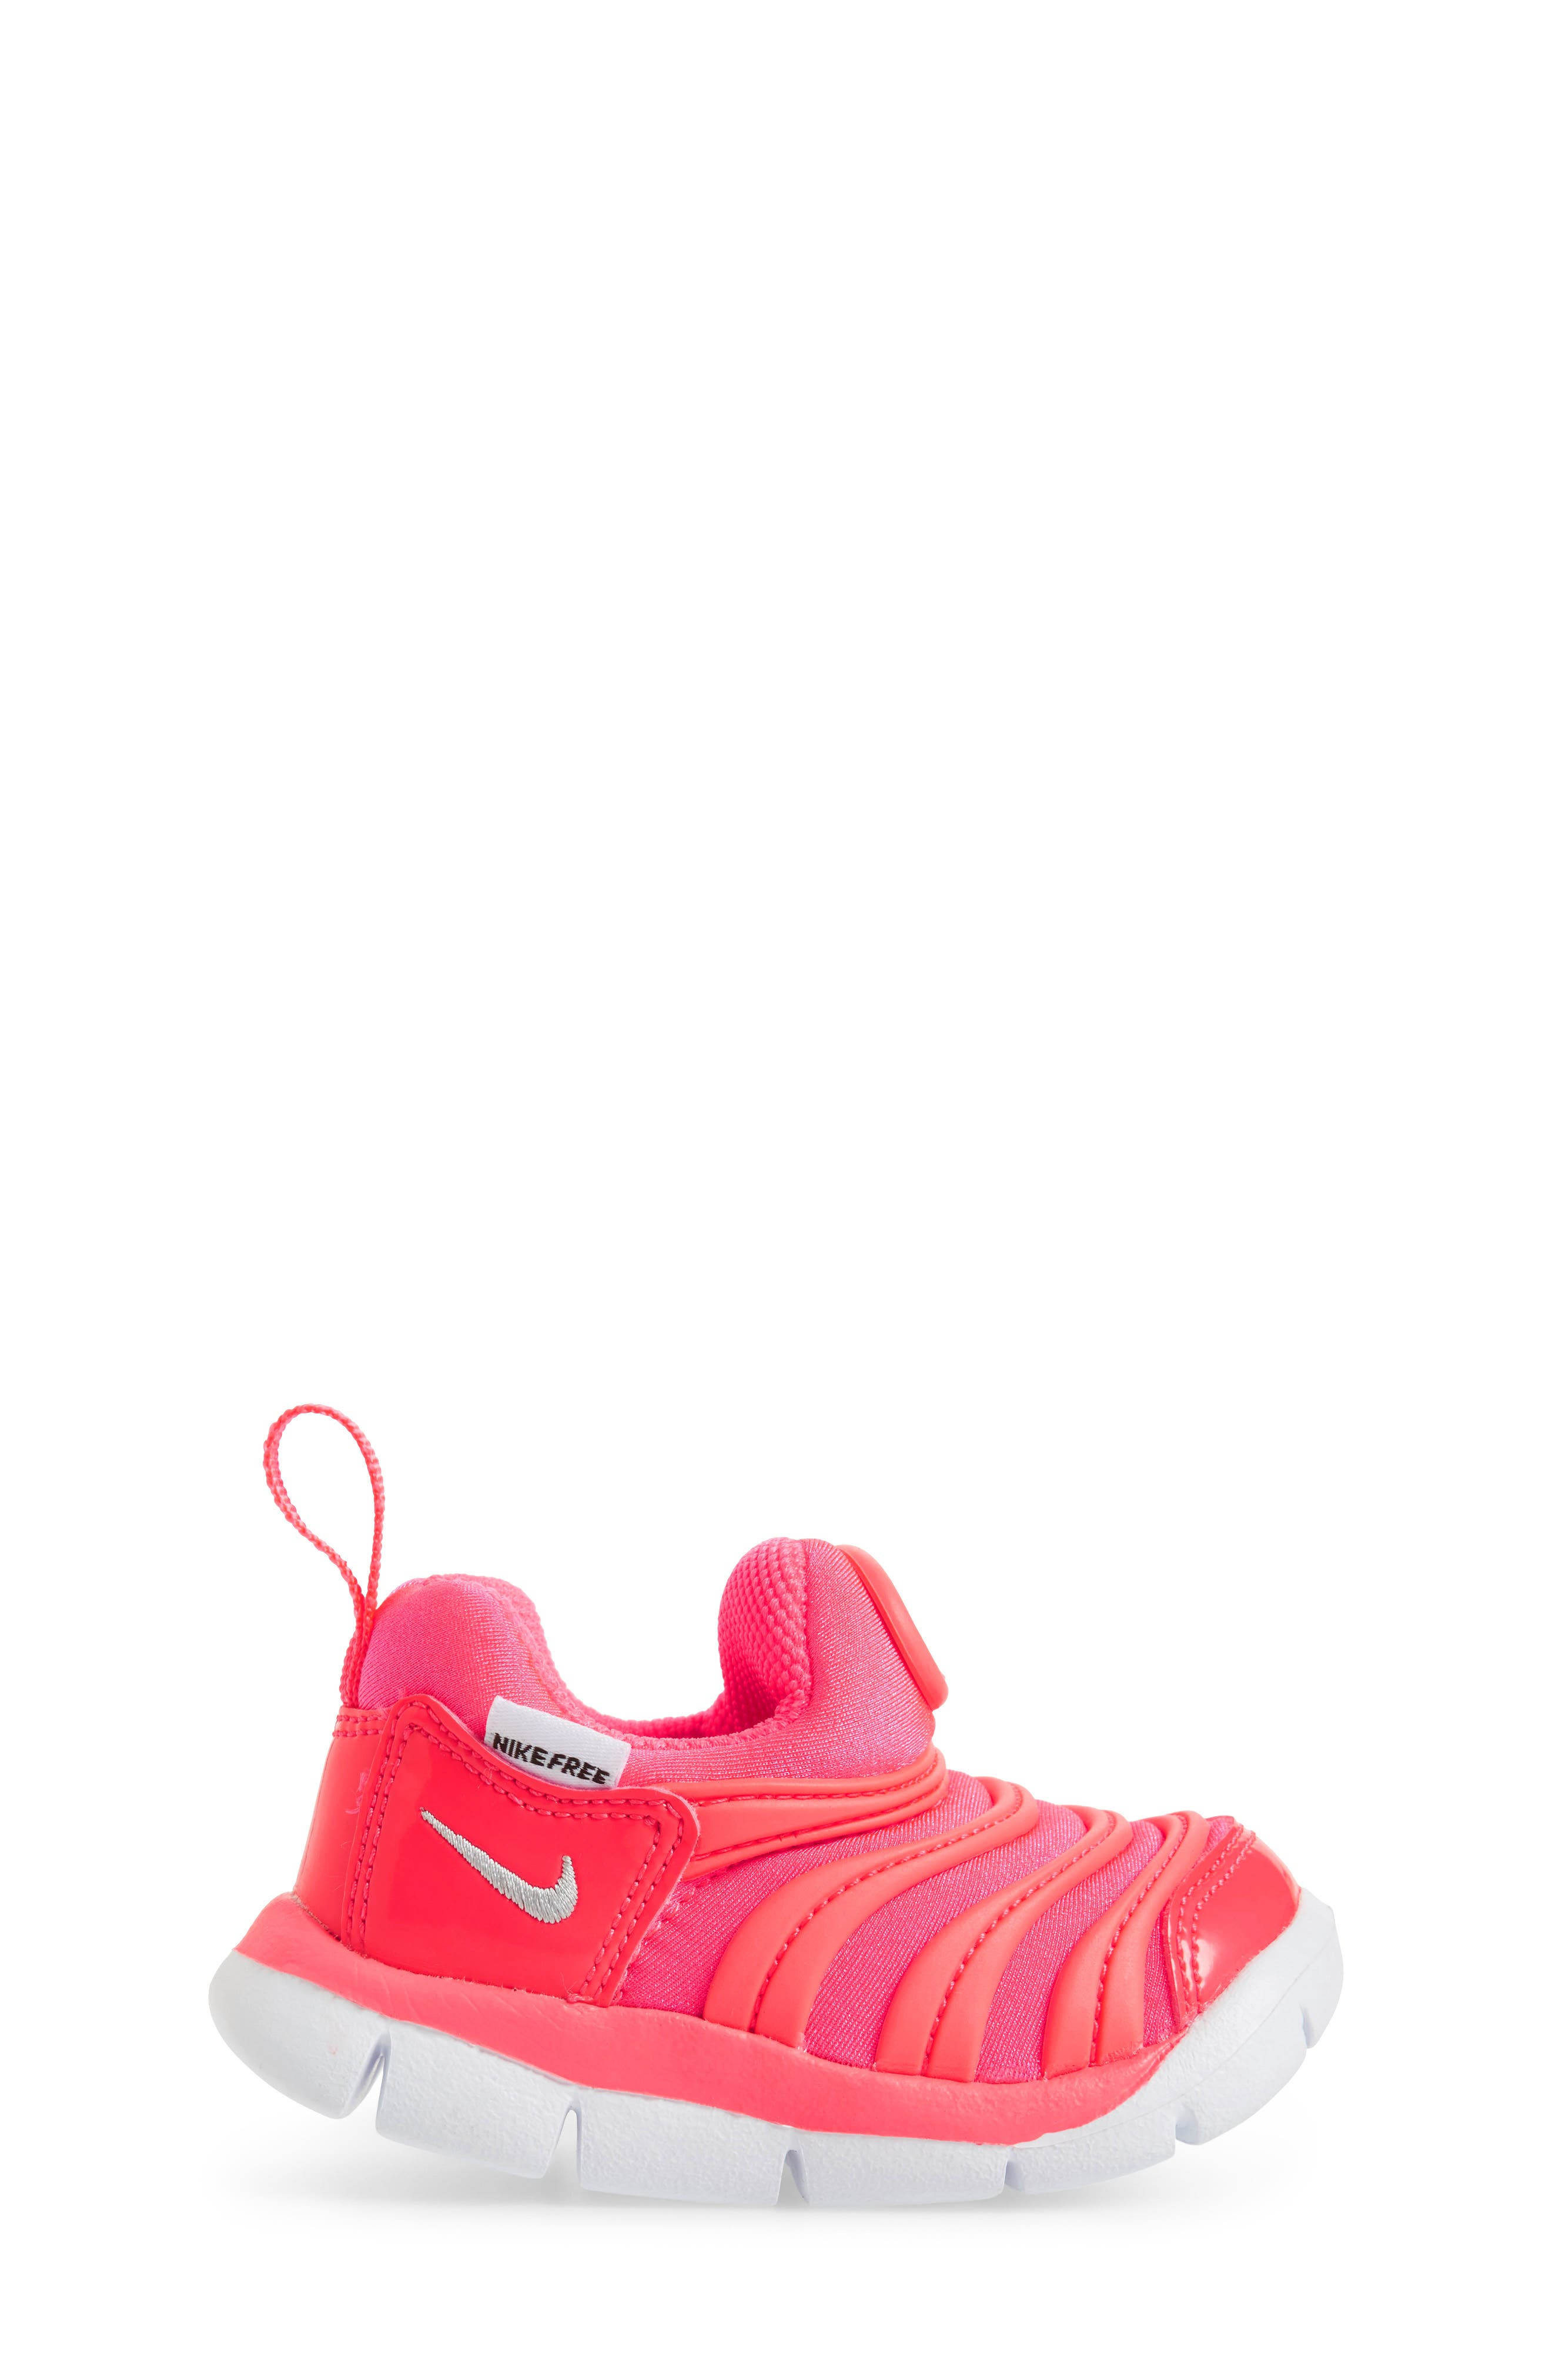 Dynamo Free Sneaker,                             Alternate thumbnail 3, color,                             Racer Pink/ Silver/ Hot Punch